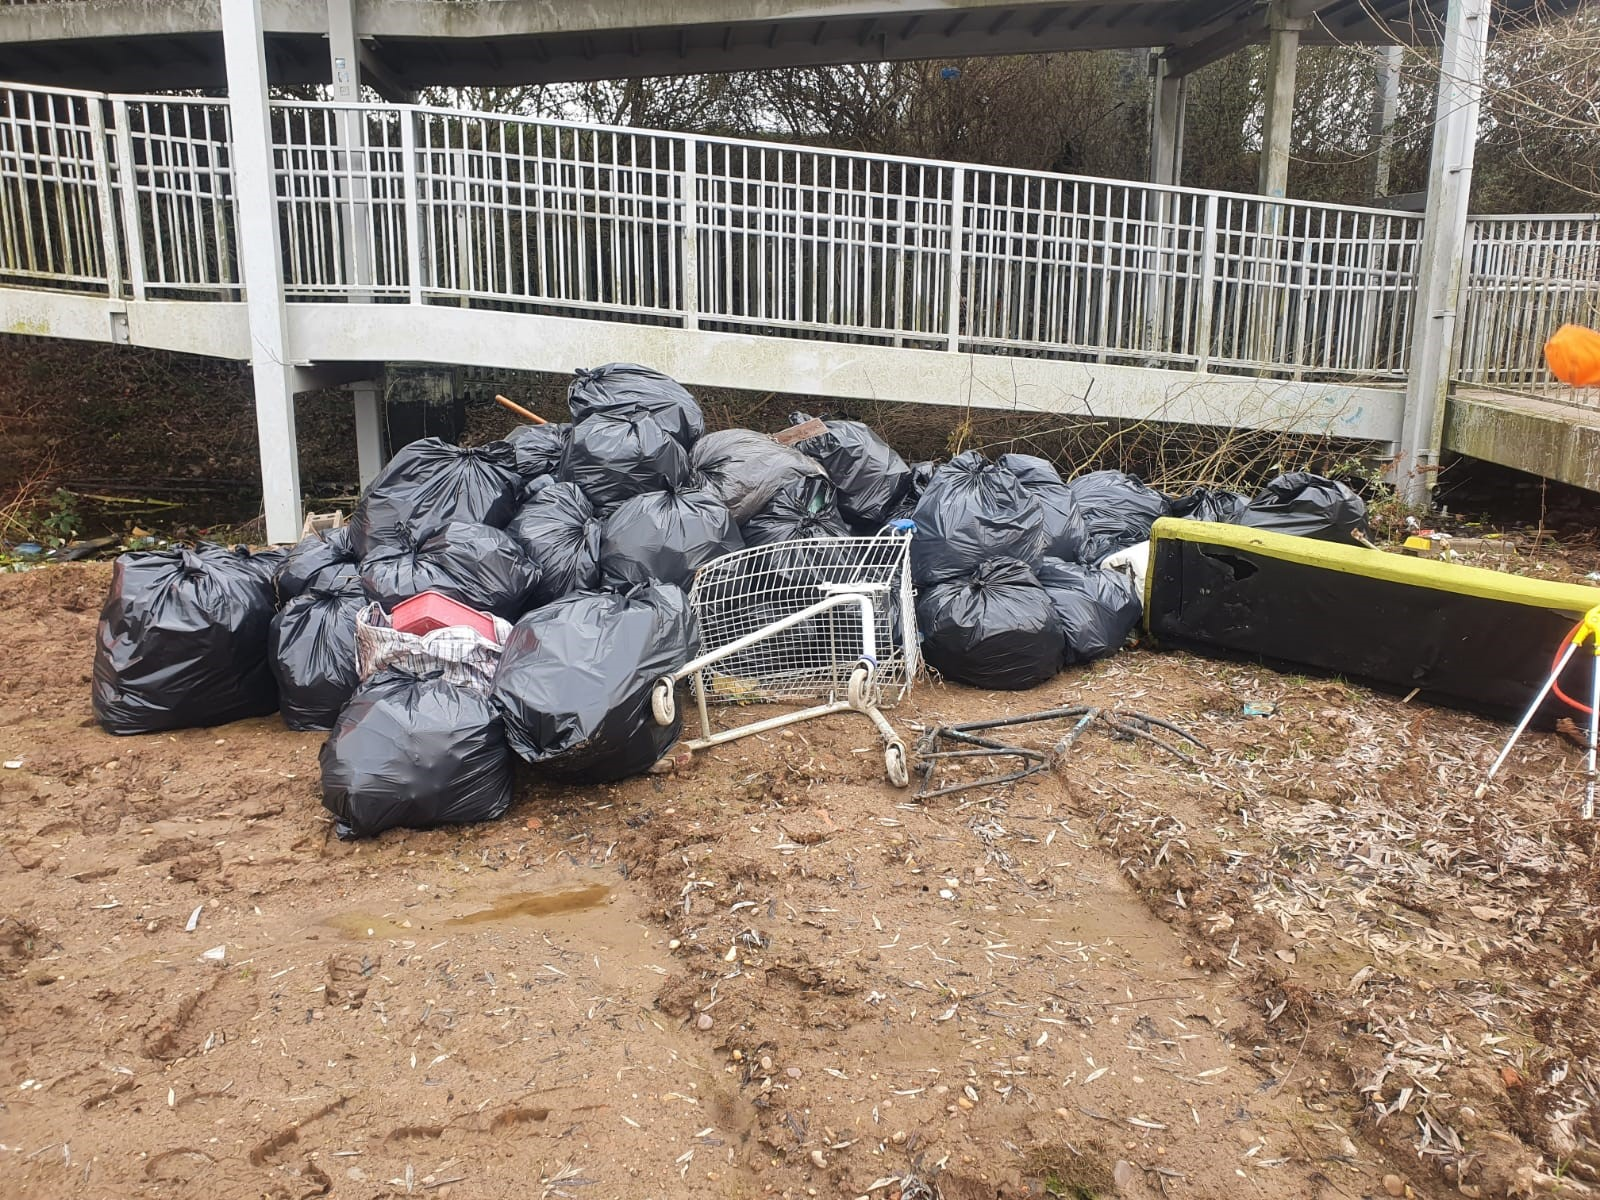 150 bags were collected from one site recently, weighing more than a tonne.